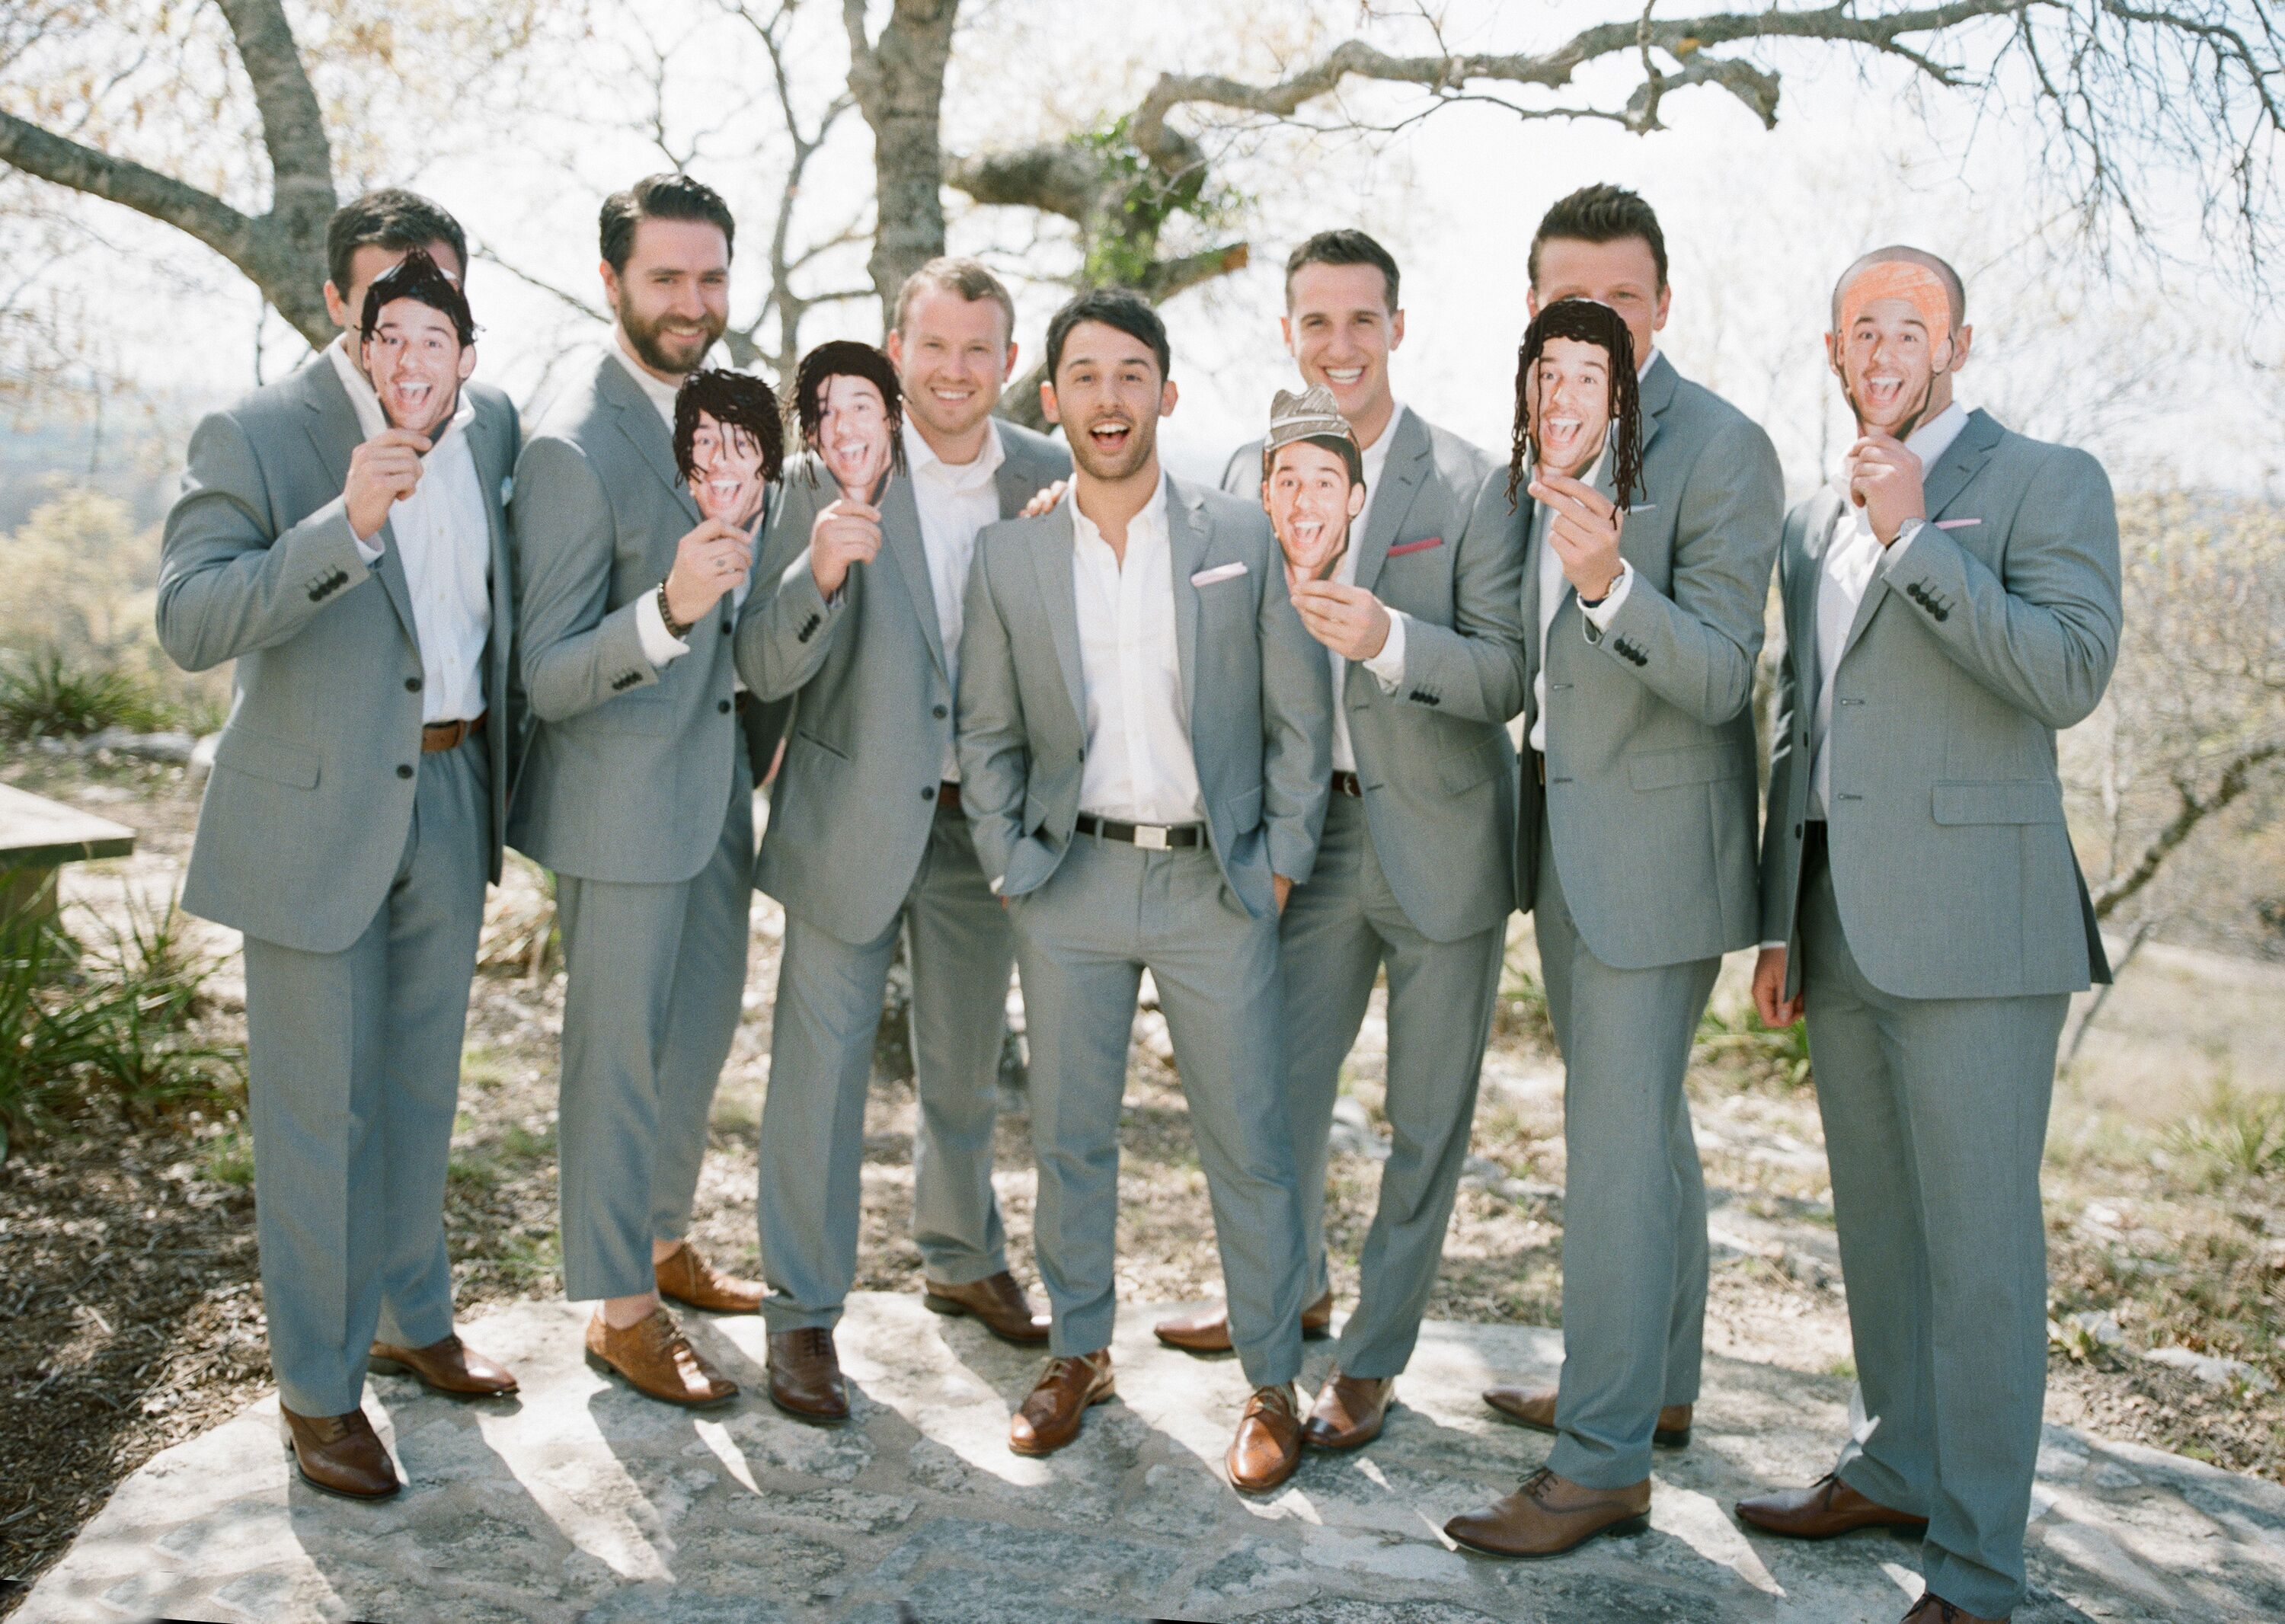 Casual Gray Suit Groomsmen